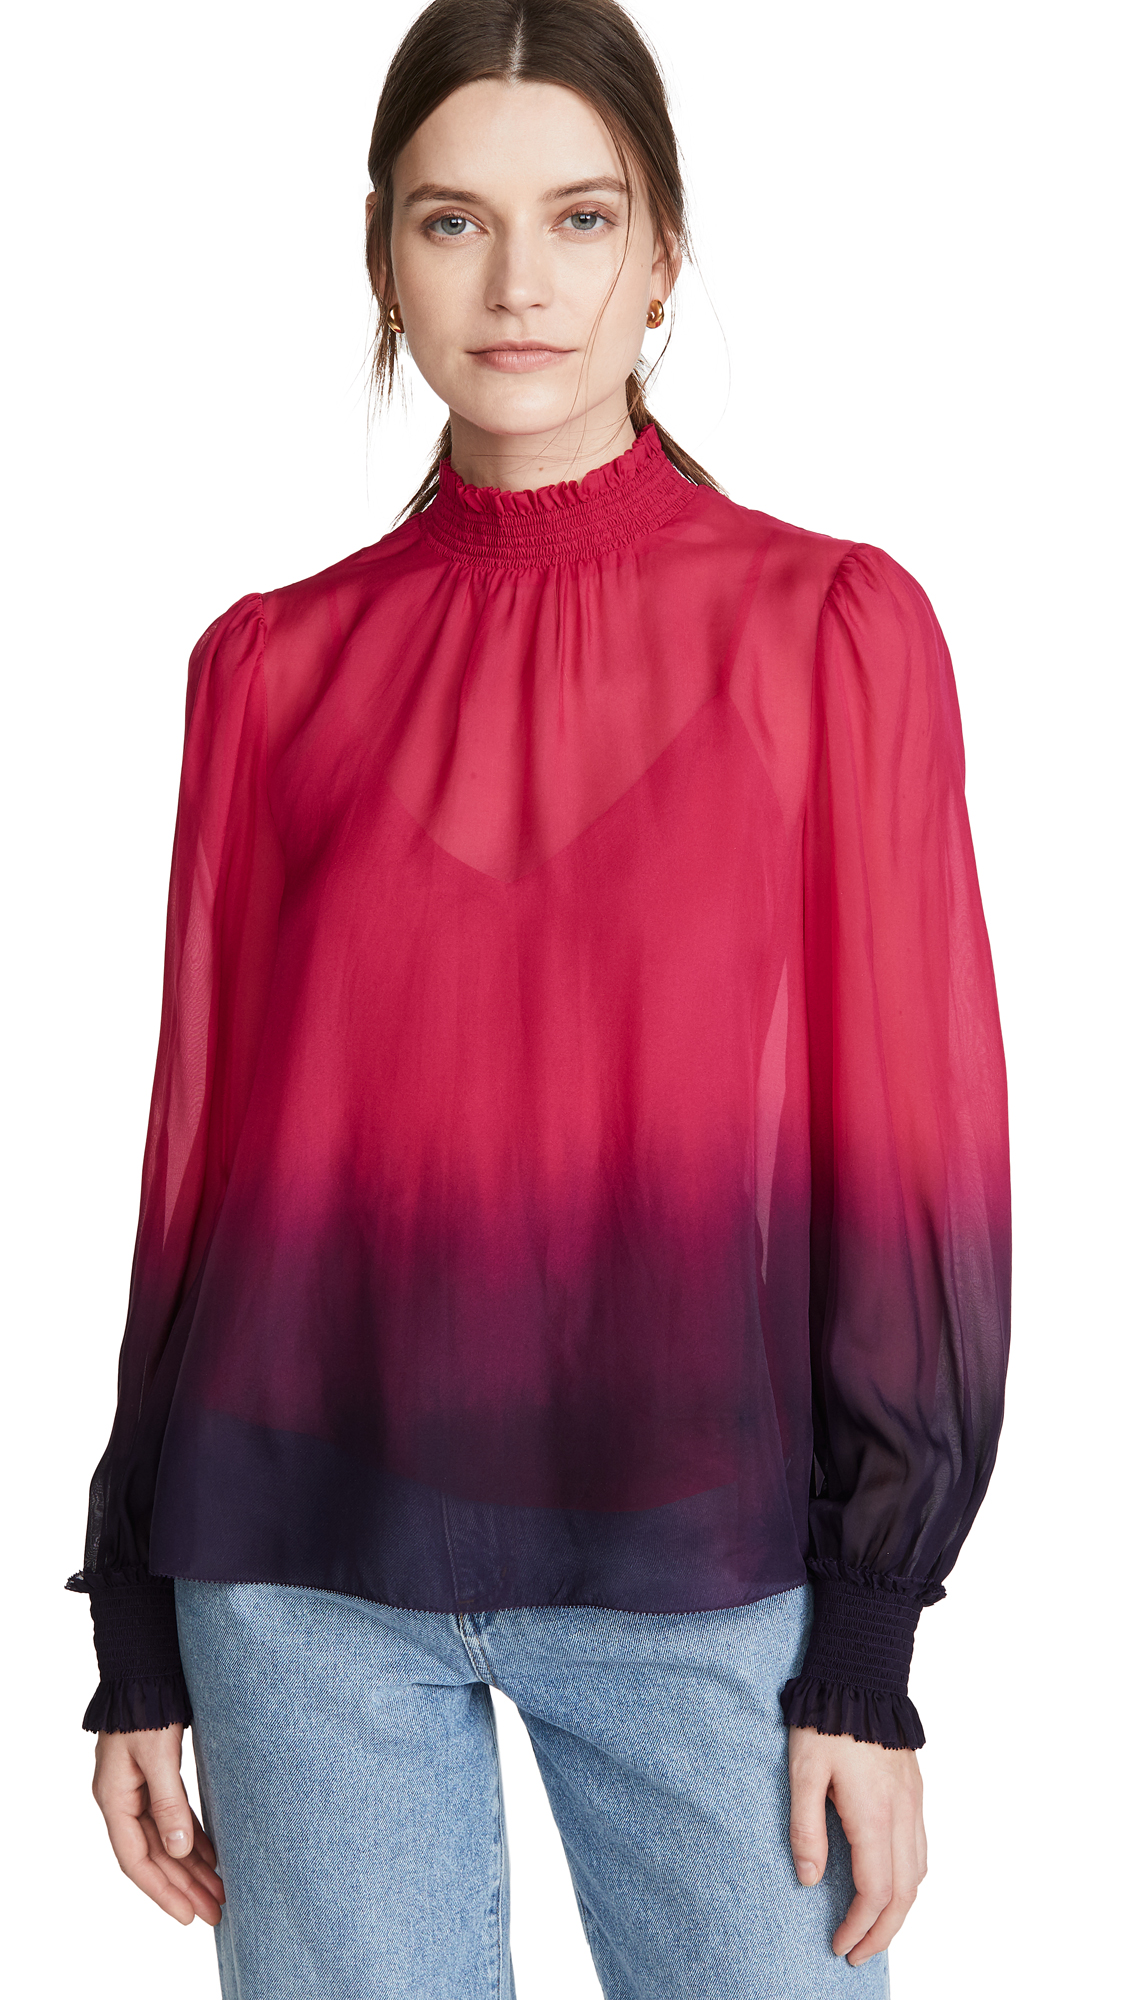 CAMI NYC The Willa Top - 30% Off Sale